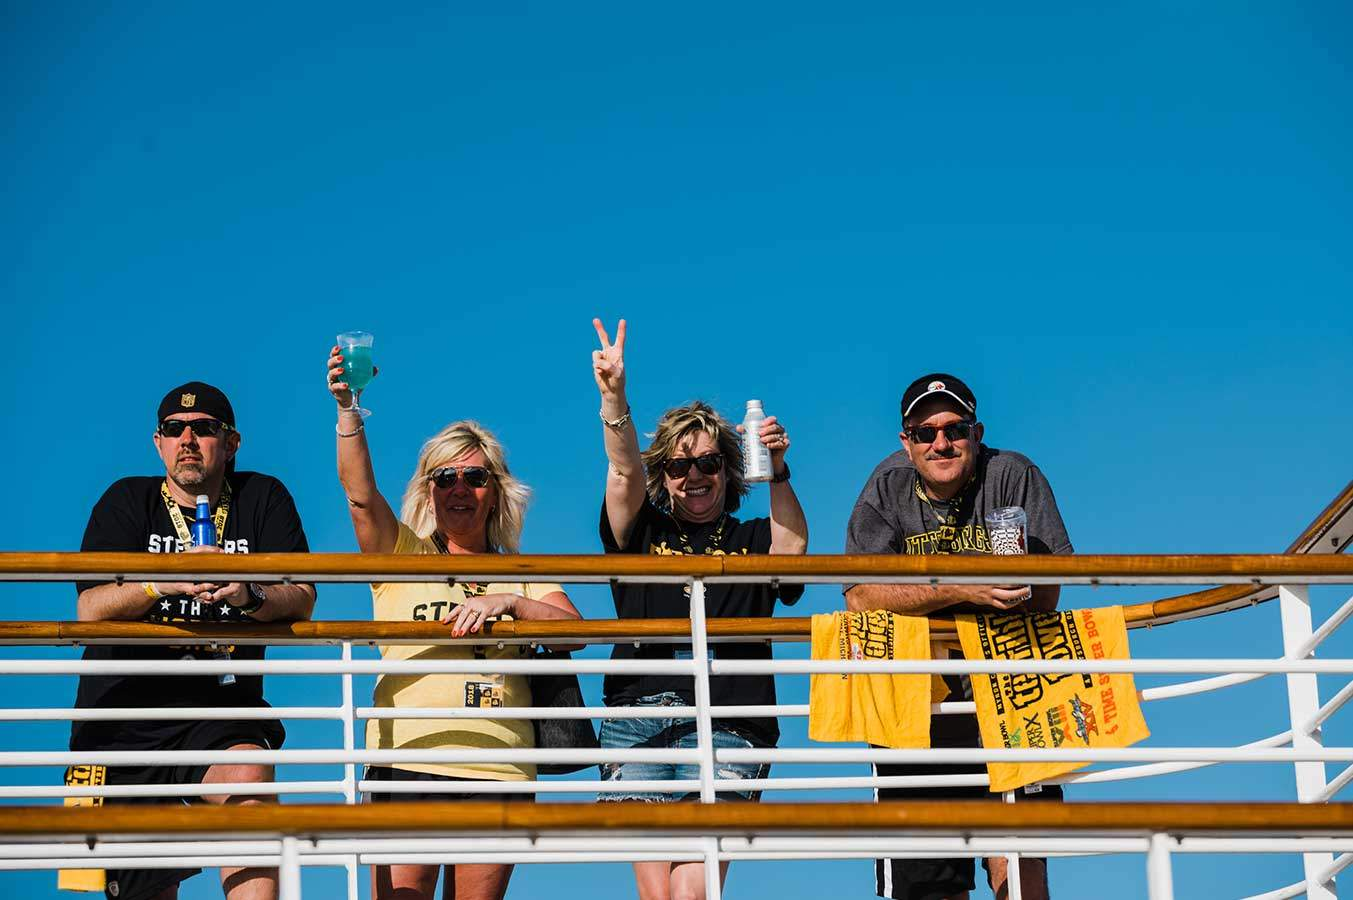 21_2018_legends_of_pittsburgh_cruise_photo